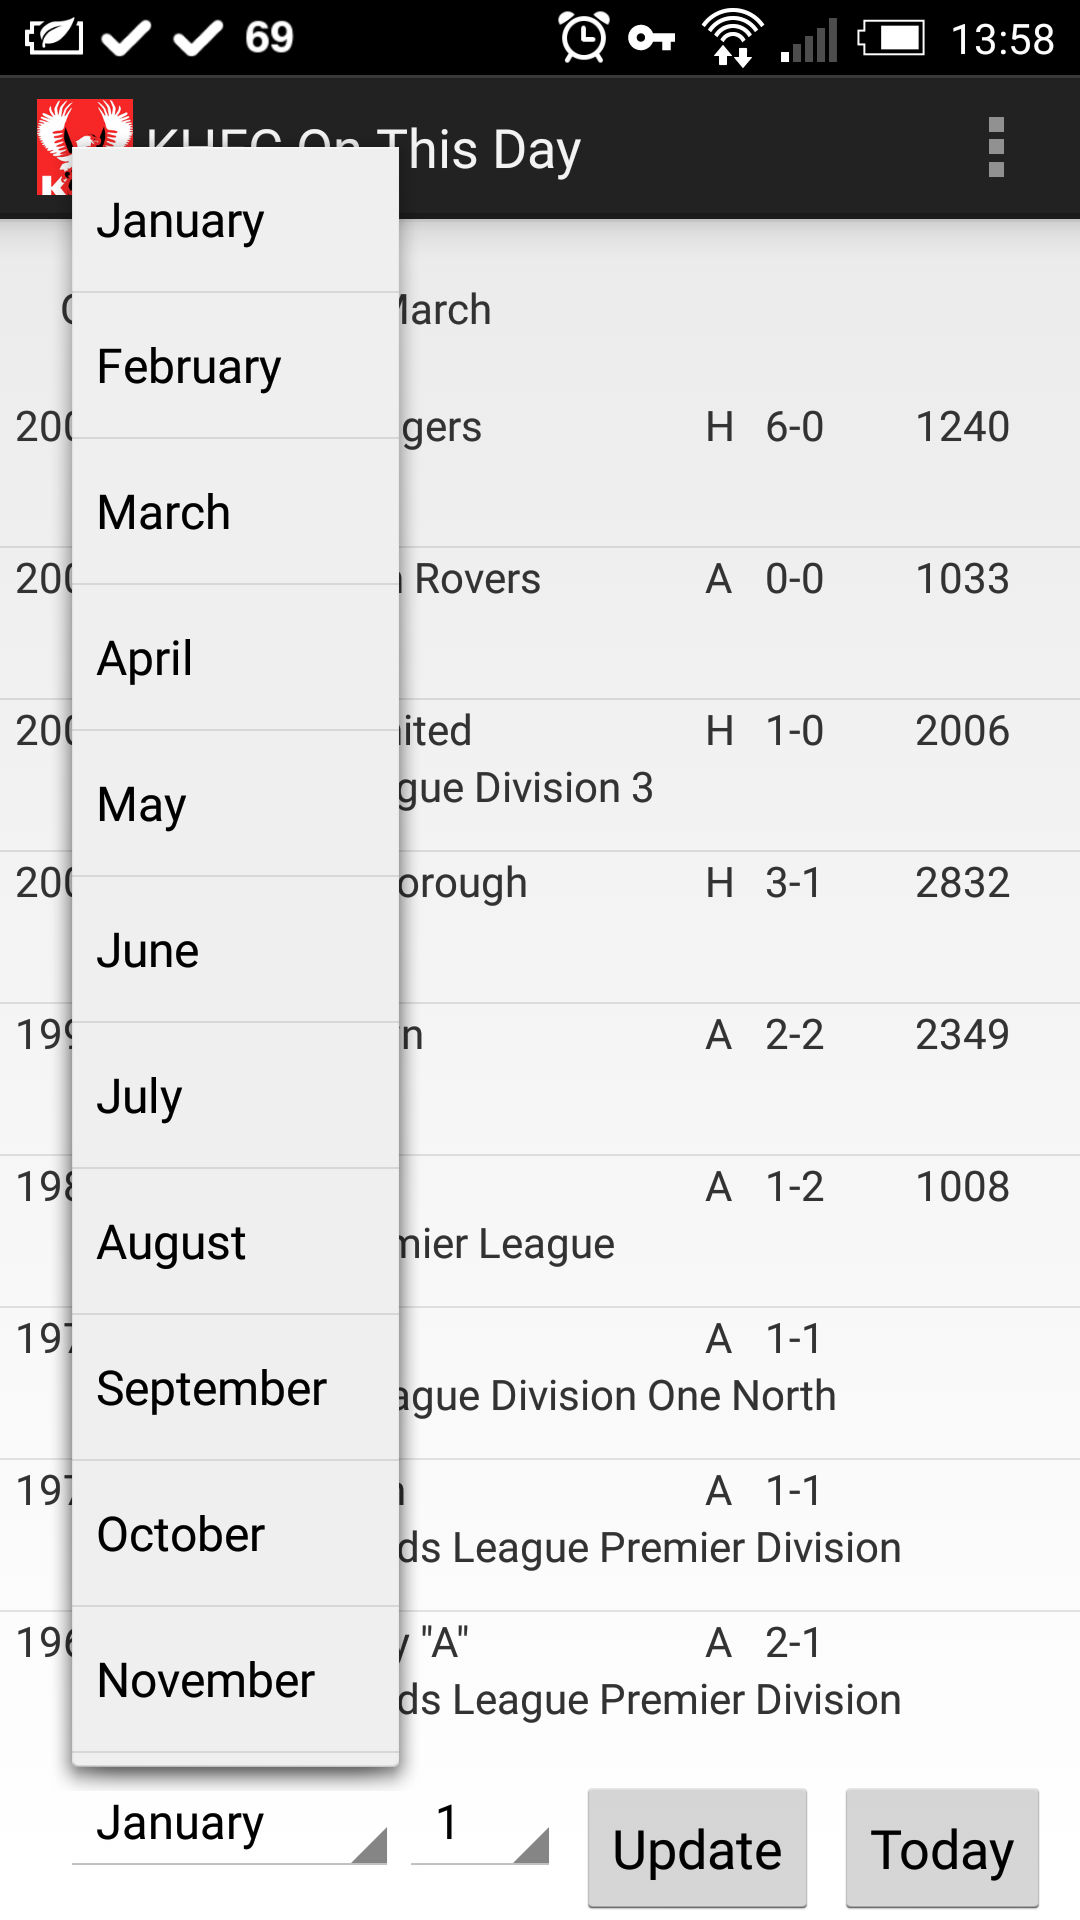 KHFC - On This Day app screenshot